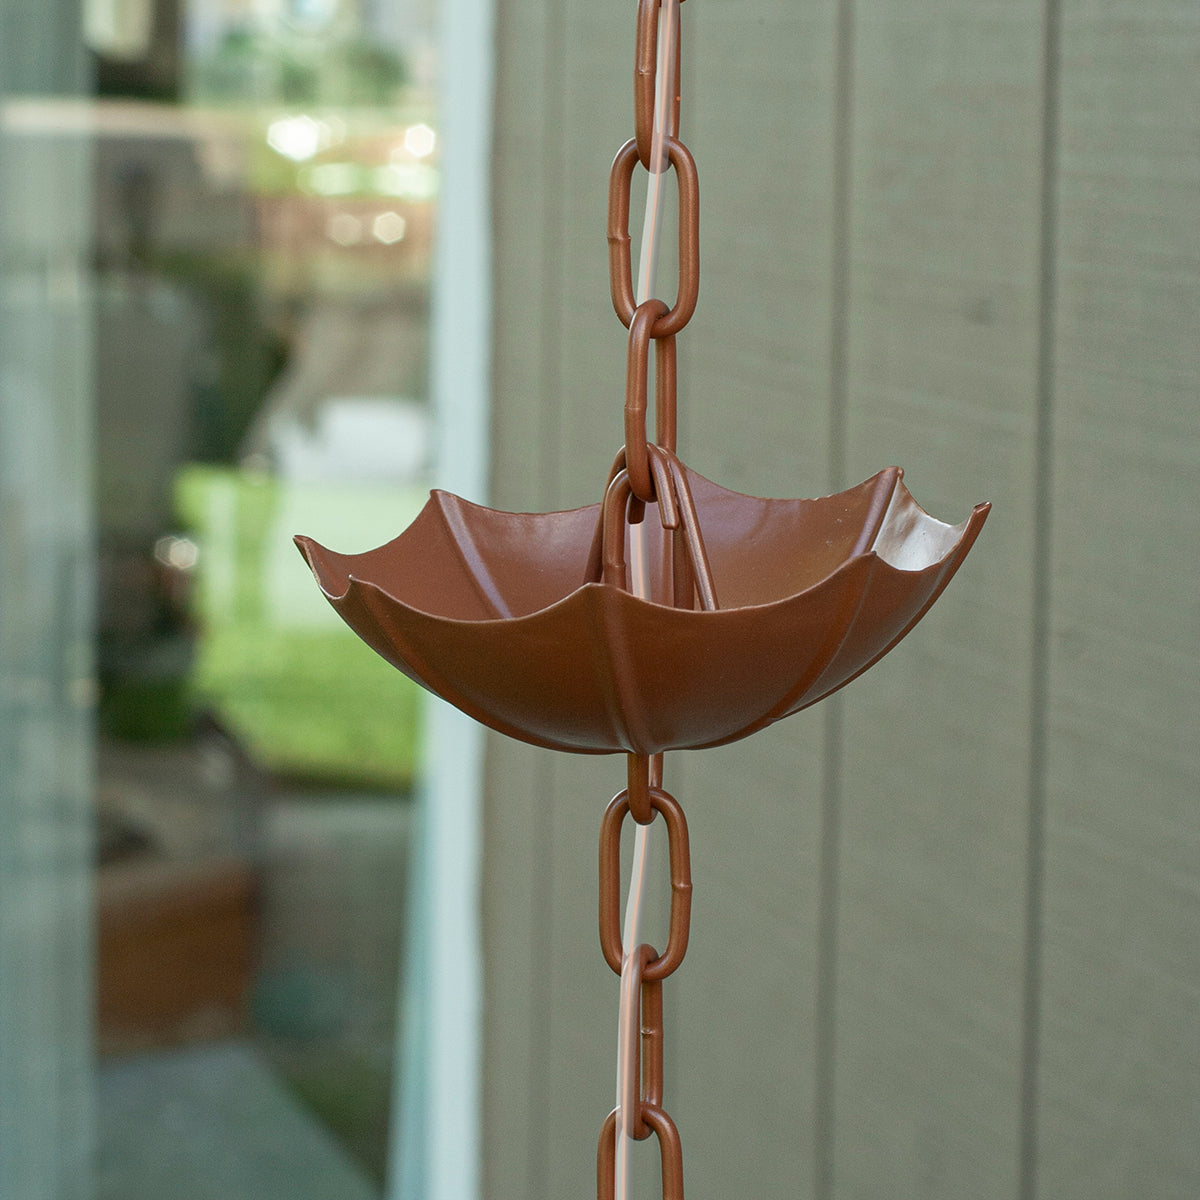 Umbrella Solar Illuminated Rain Chain